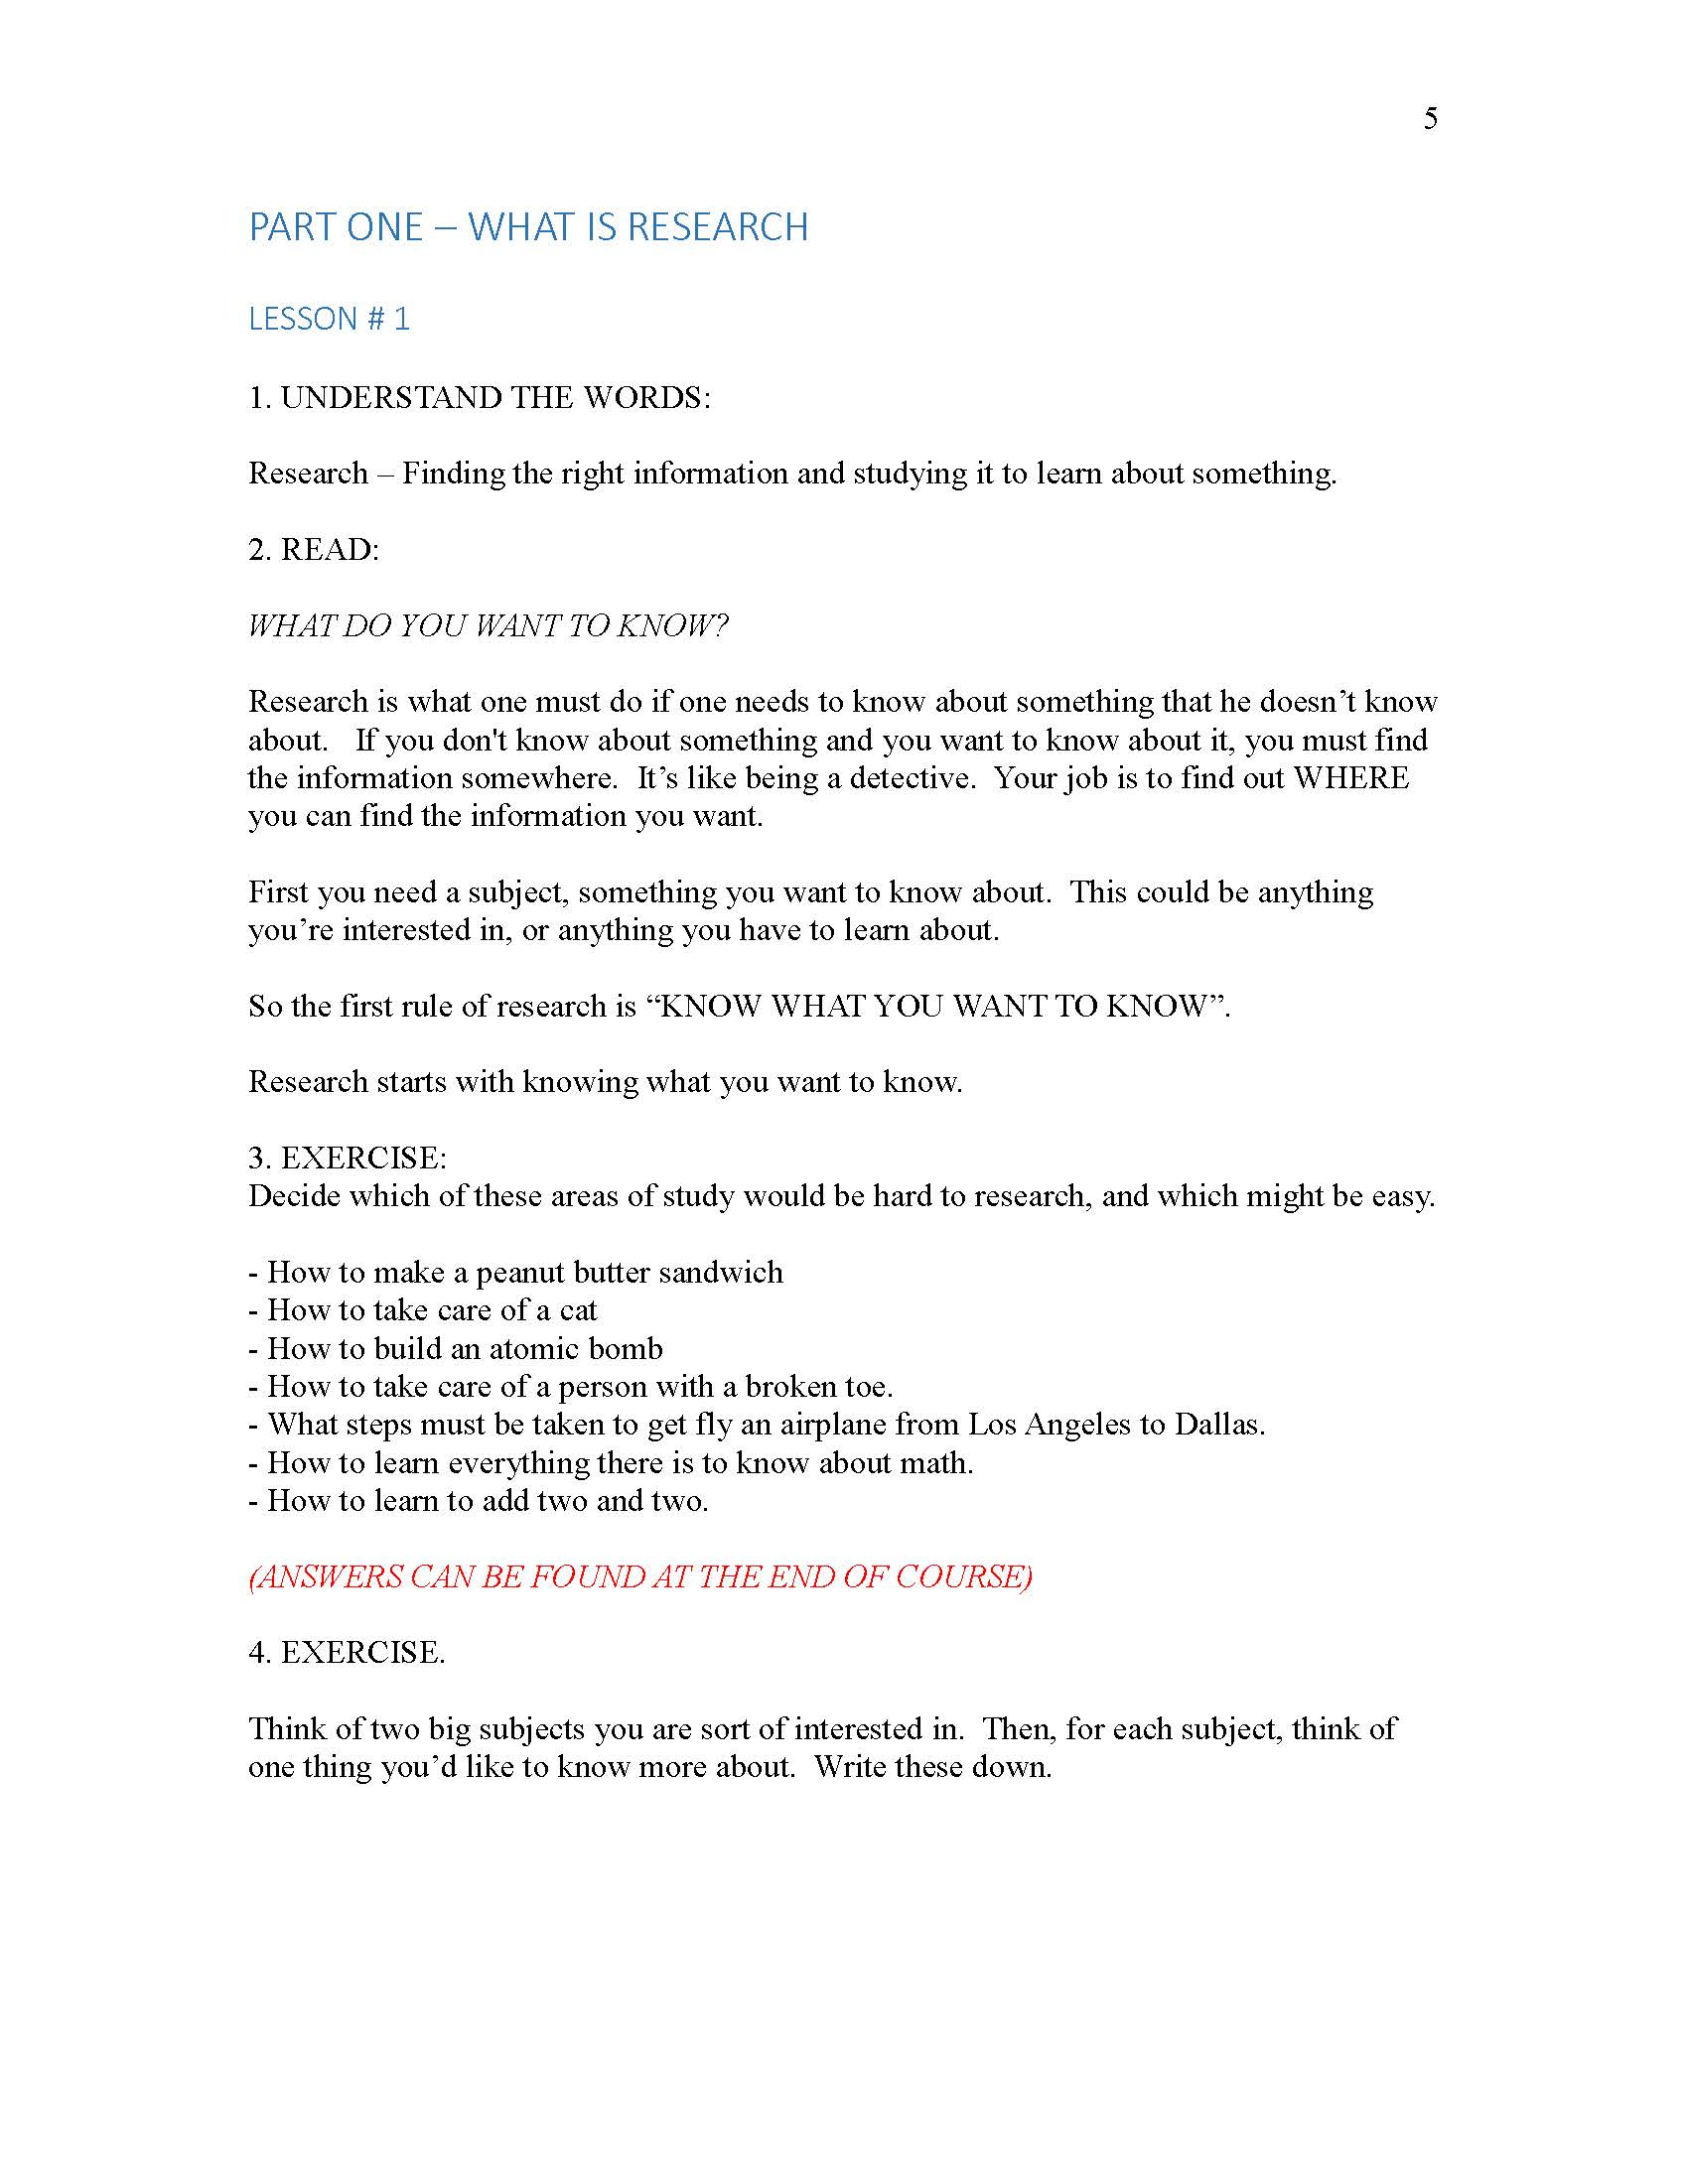 Samples Step 3  - Study & Life Skills - How To Do Reseach_Page_06.jpg